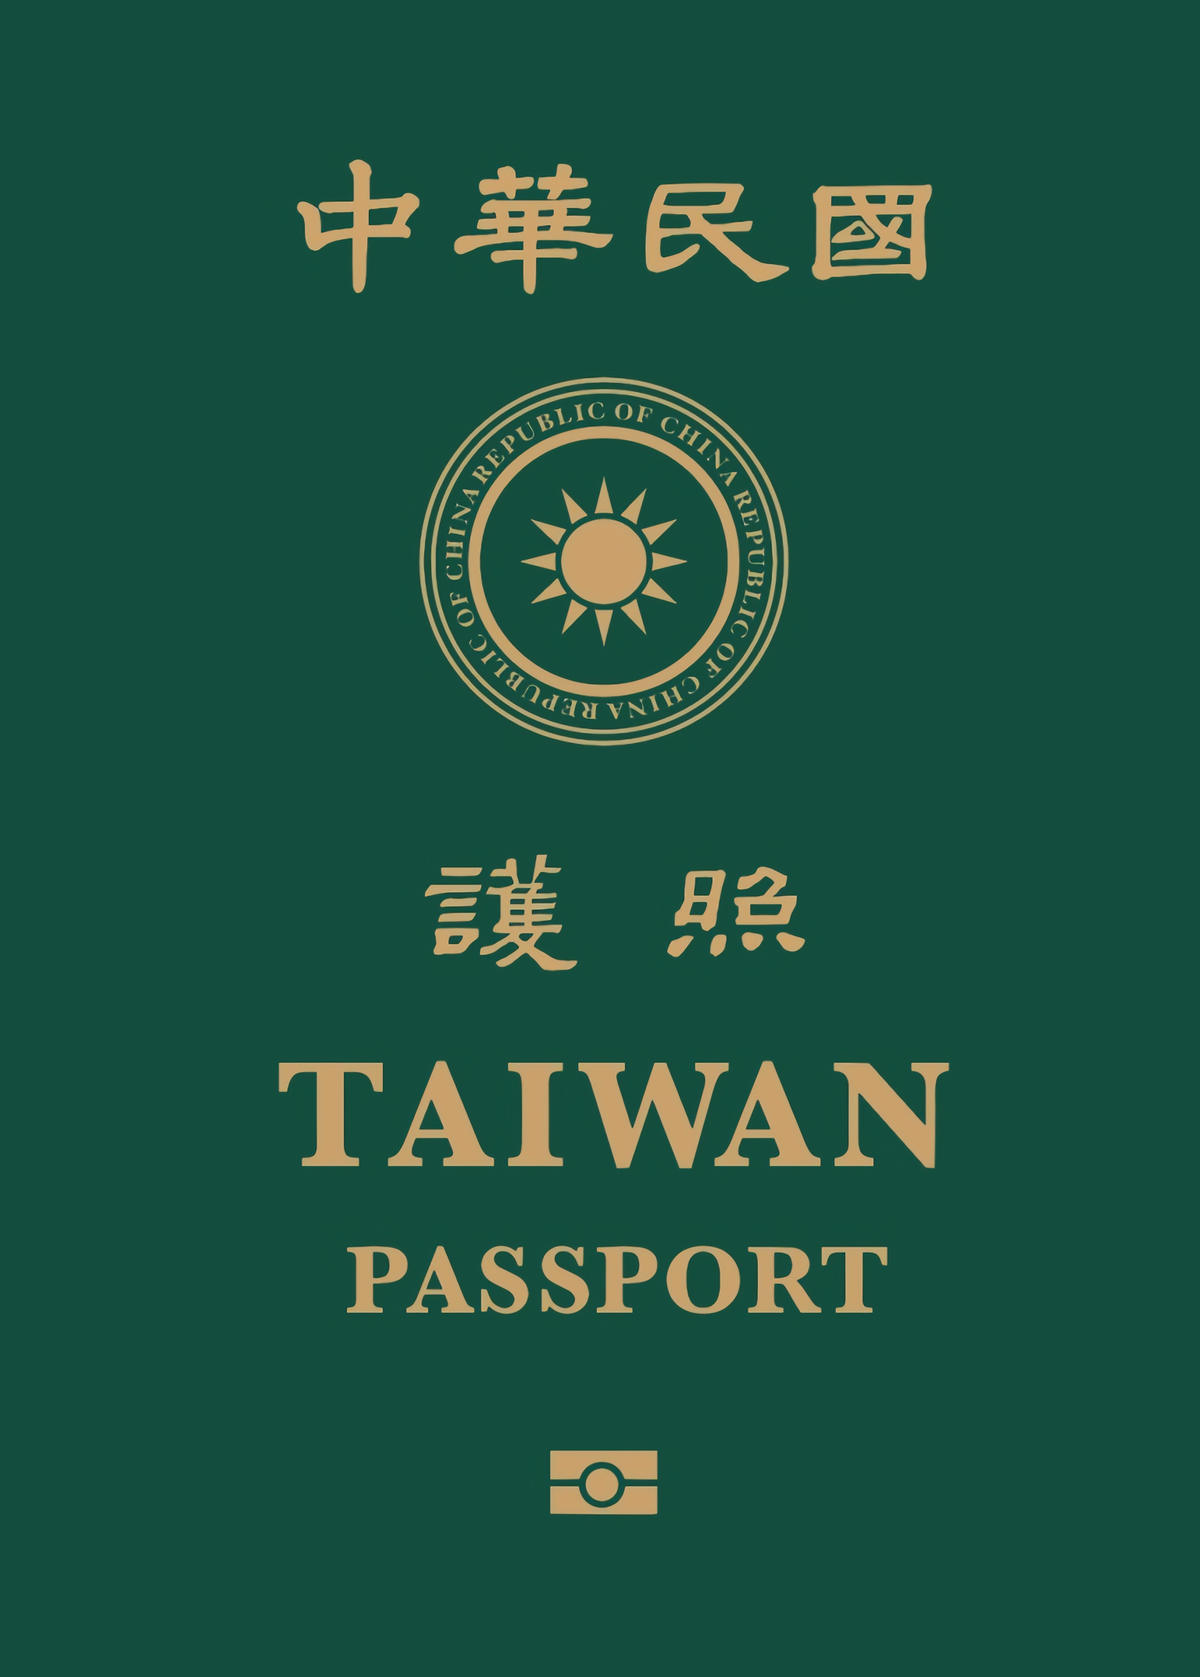 Visa Requirements For Taiwanese Citizens Wikipedia